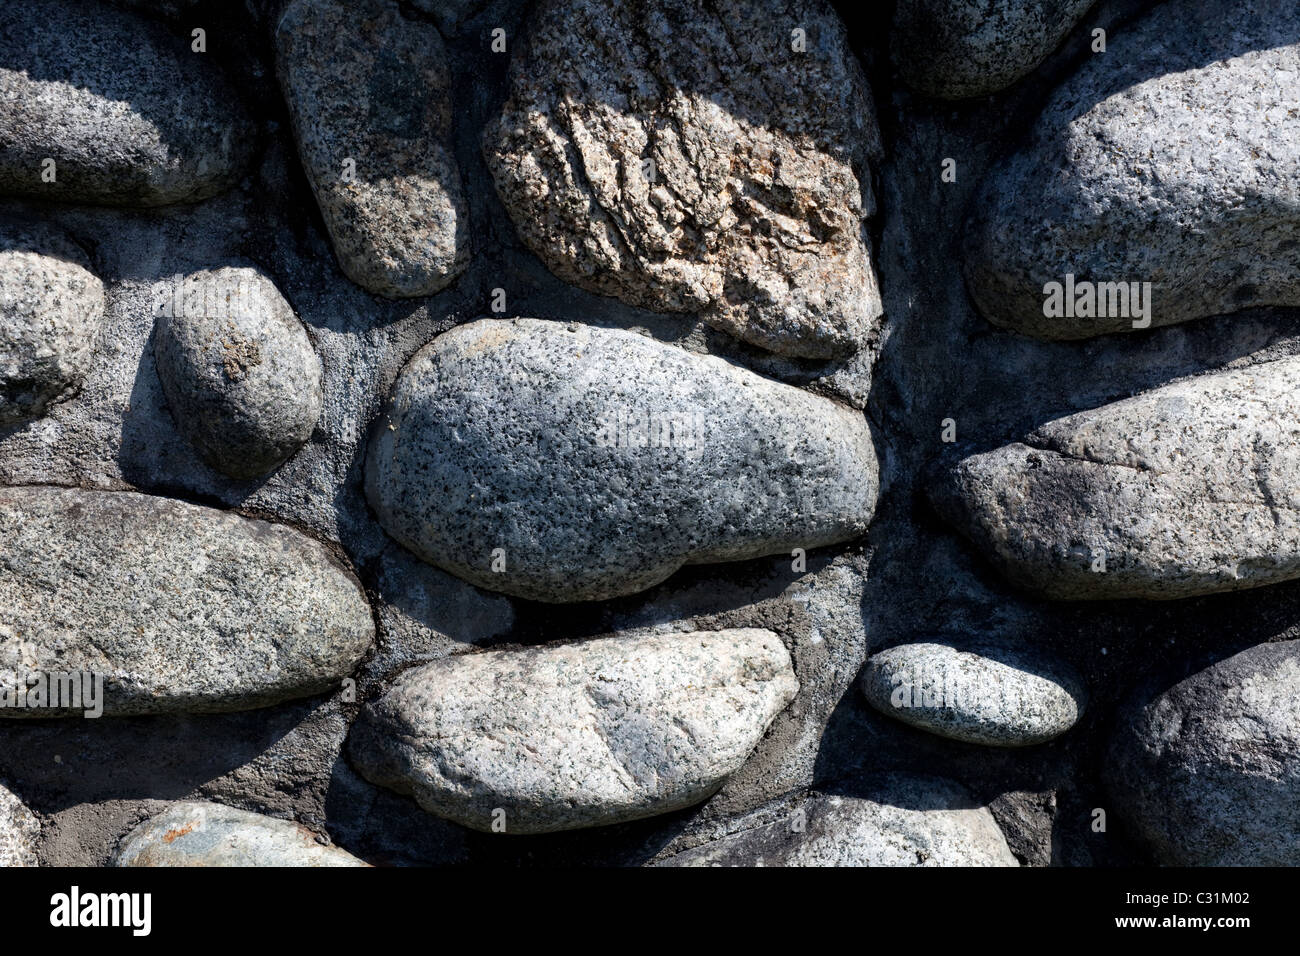 rounded river rocks wall for background - Stock Image